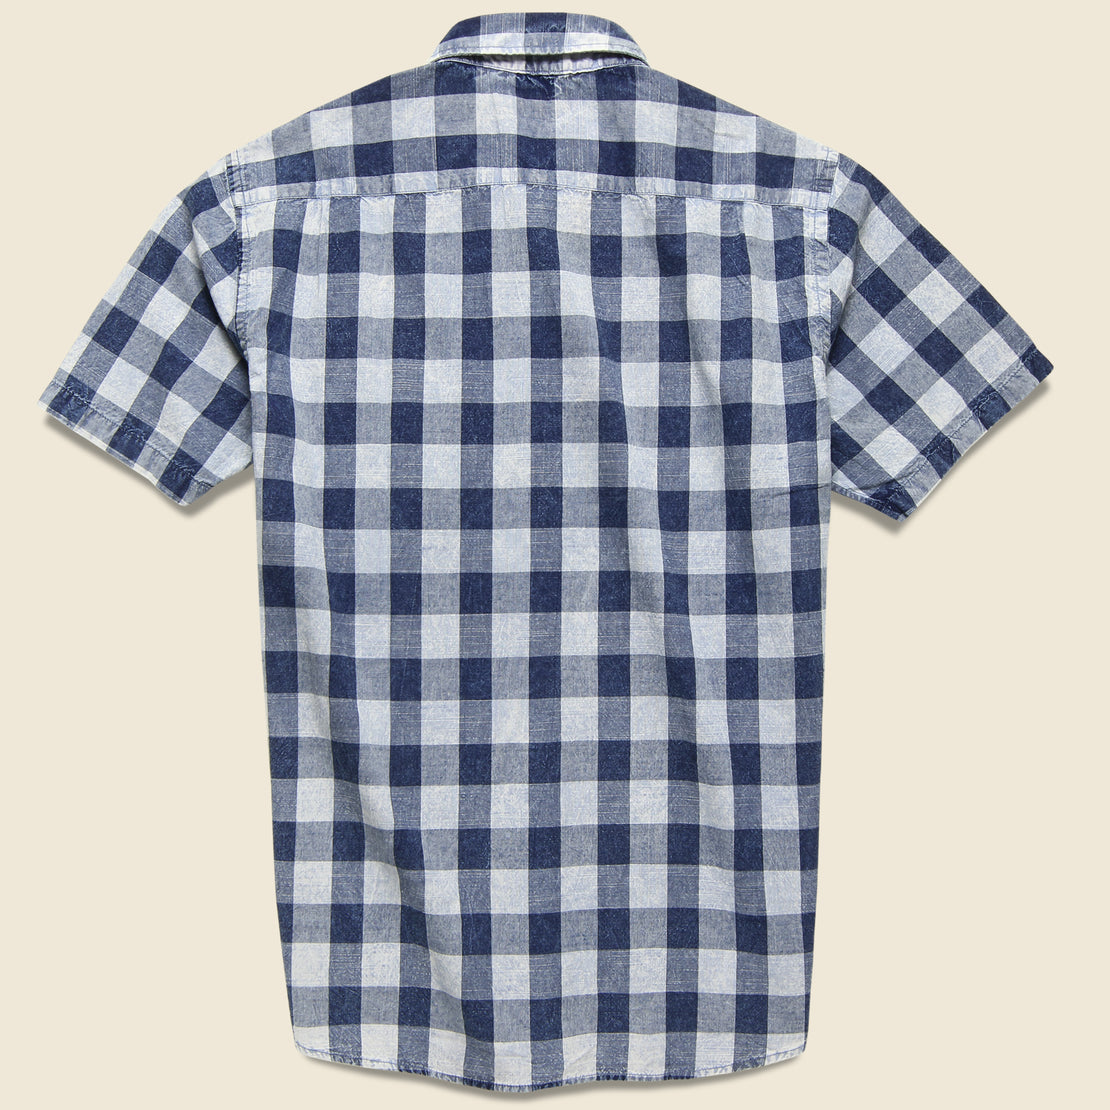 Ventura Shirt - Workwear Buffalo Blue